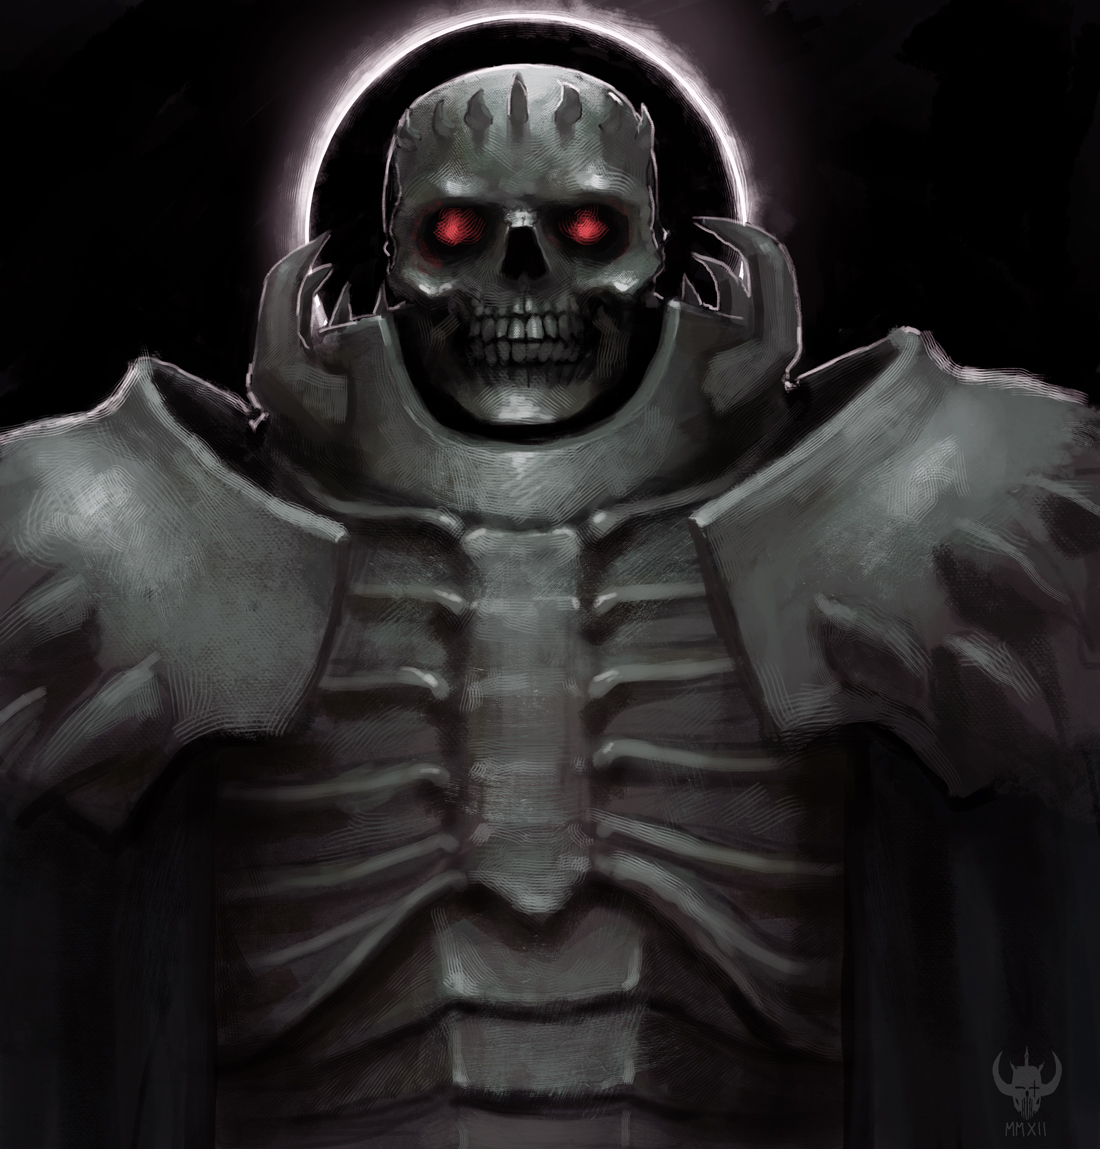 skull_knight_by_oevrlord-d5gbe2e.jpg